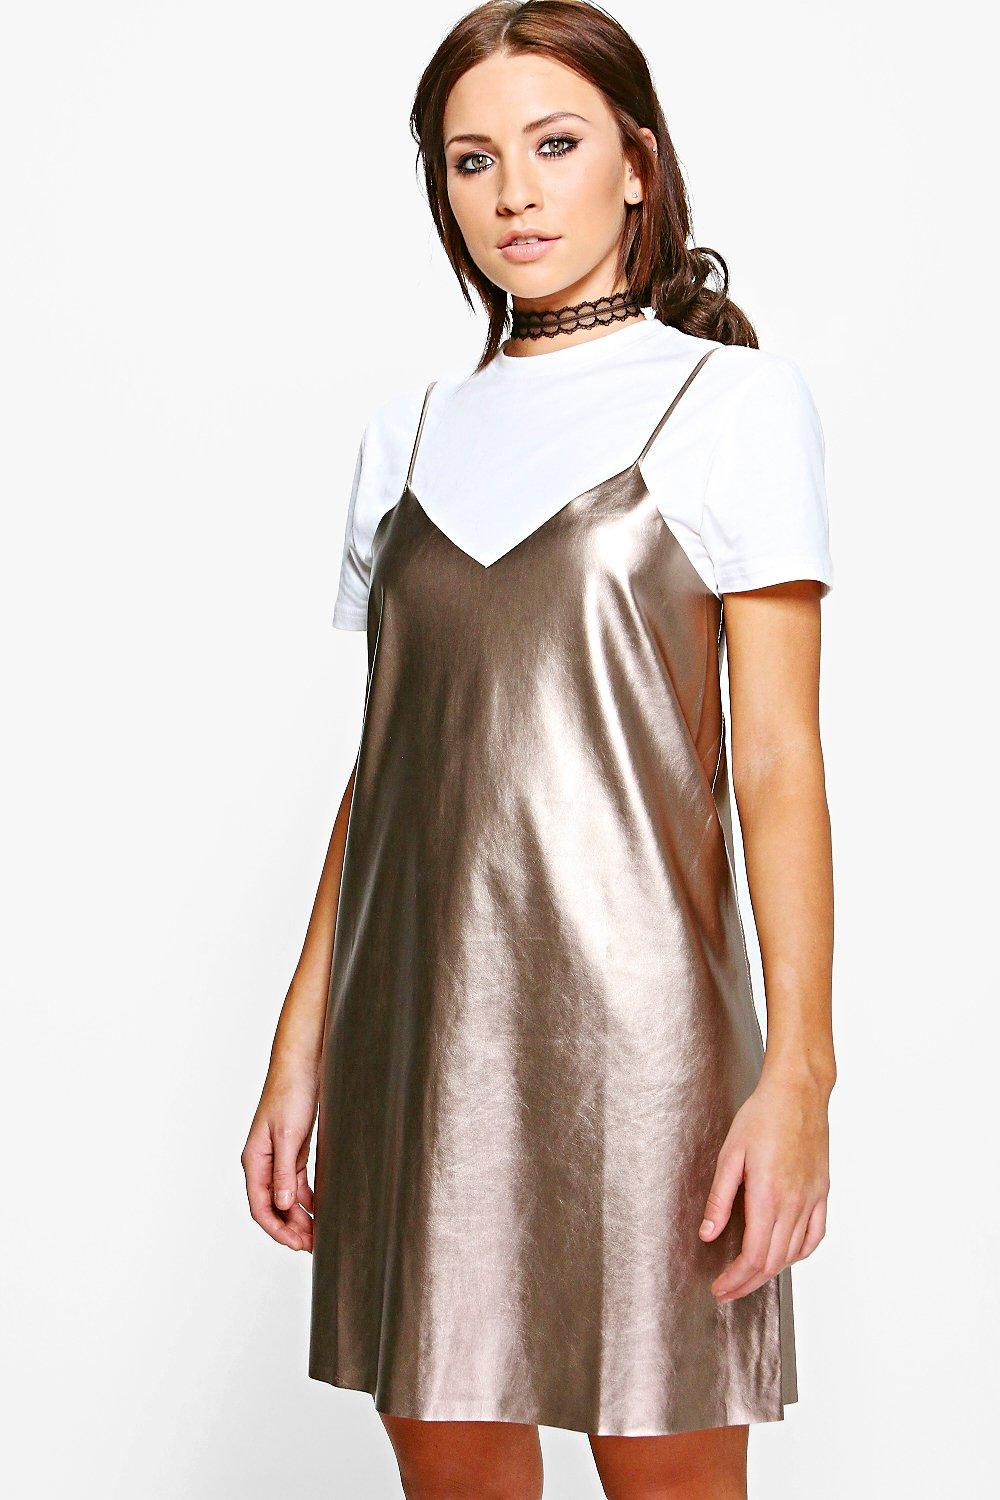 Details about boohoo womens melody metallic faux leather slip dress